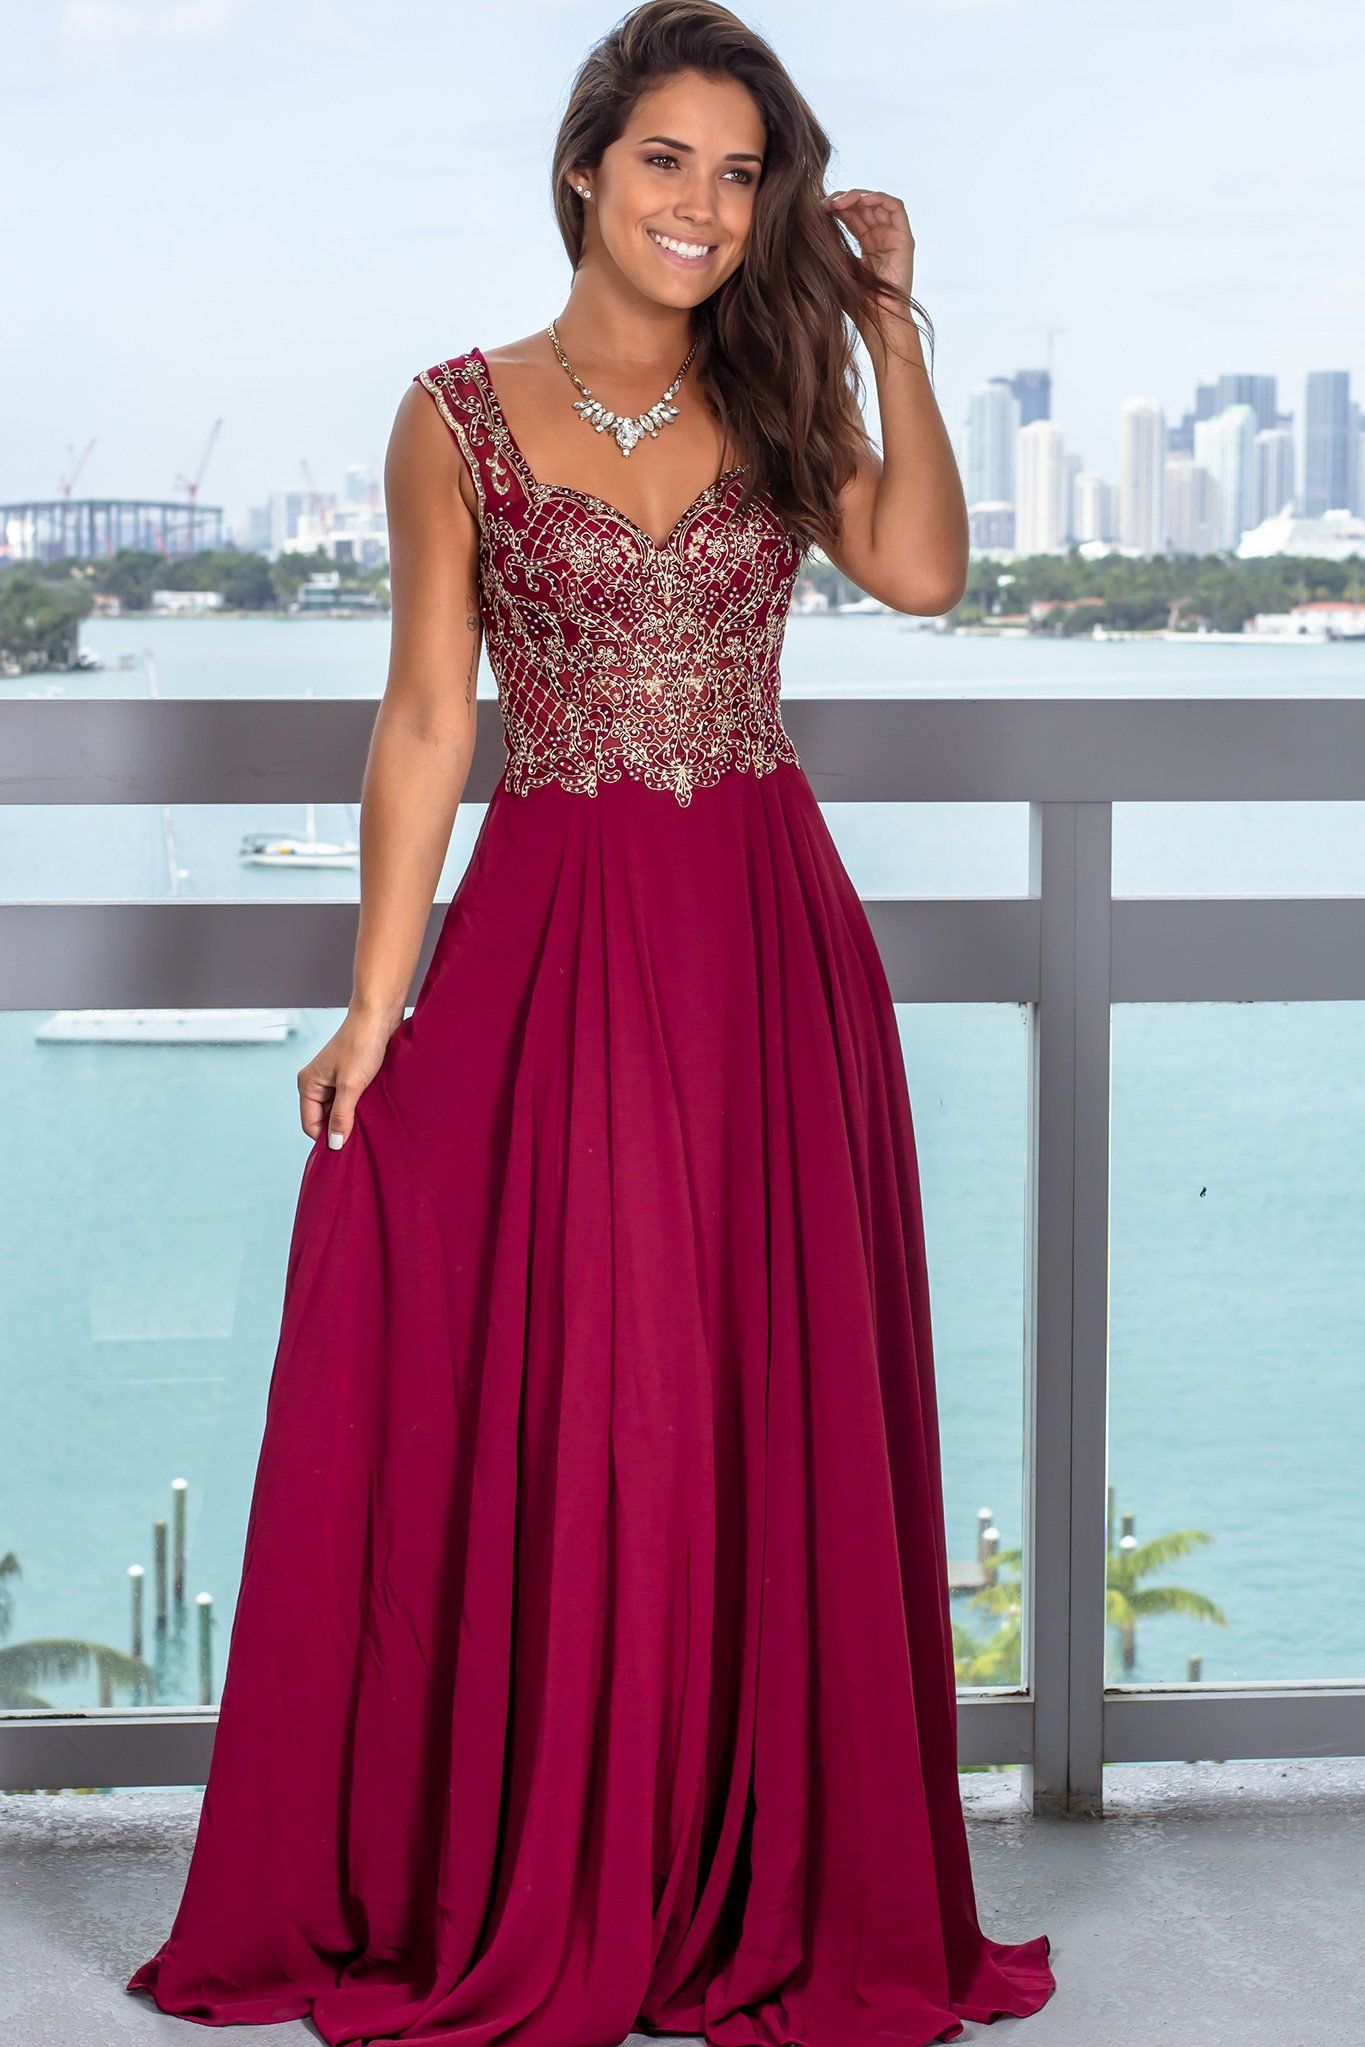 Wine Maxi Dress With Jewel Embroidered Top Wine Maxi Dress Dresses Gala Dresses [ 2047 x 1365 Pixel ]